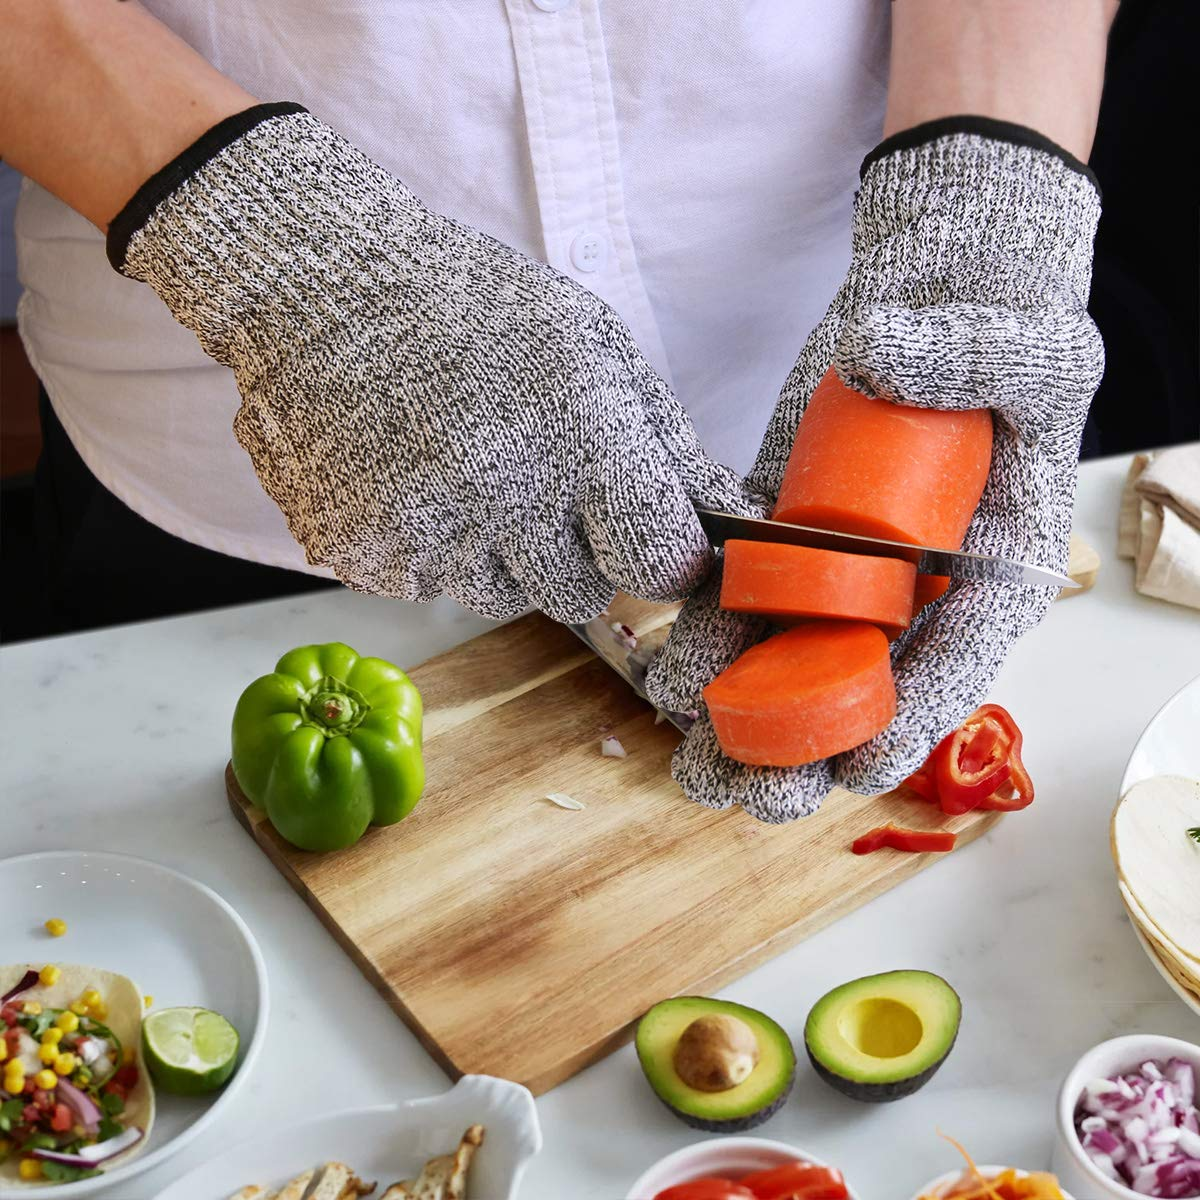 Oyster Shucking Knife Stainless Steel With High Performance Protection Food Grade Cut Resistant Gloves, Easy To Shucking Oysters (2pcs / set) by TechLeo (Image #6)